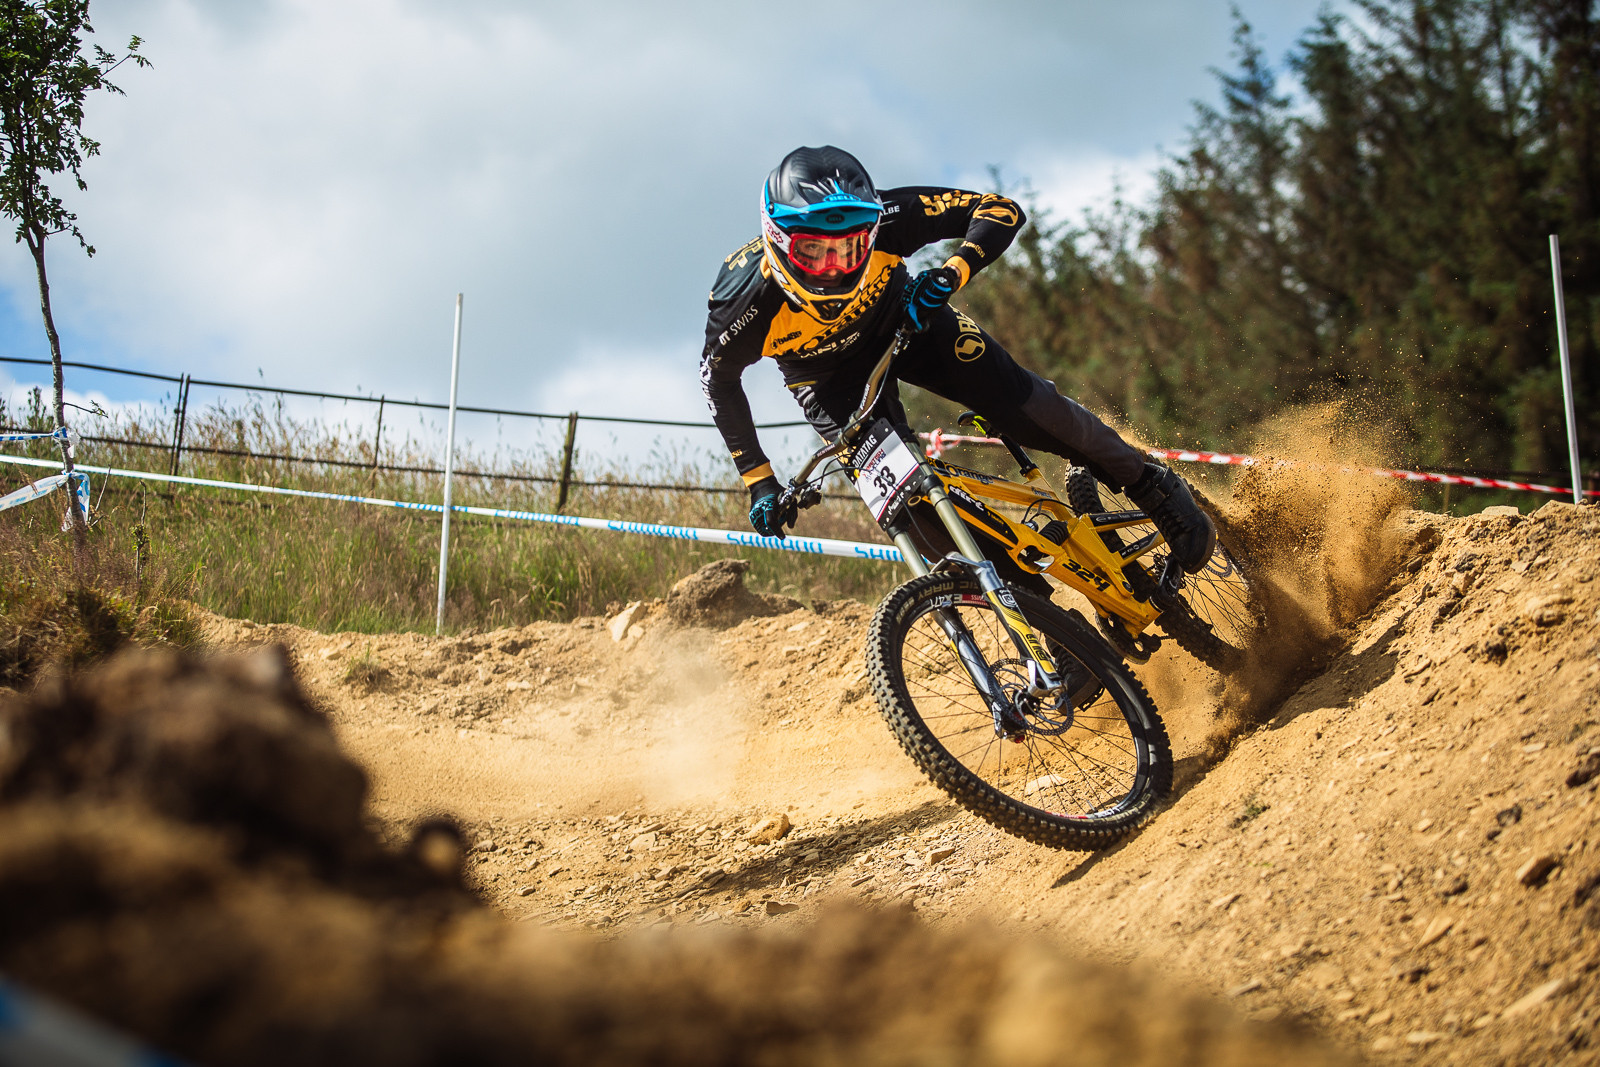 Phil Atwill - 2015 British National Champs Downhill - 2015 British National Champs Downhill Photos - Mountain Biking Pictures - Vital MTB